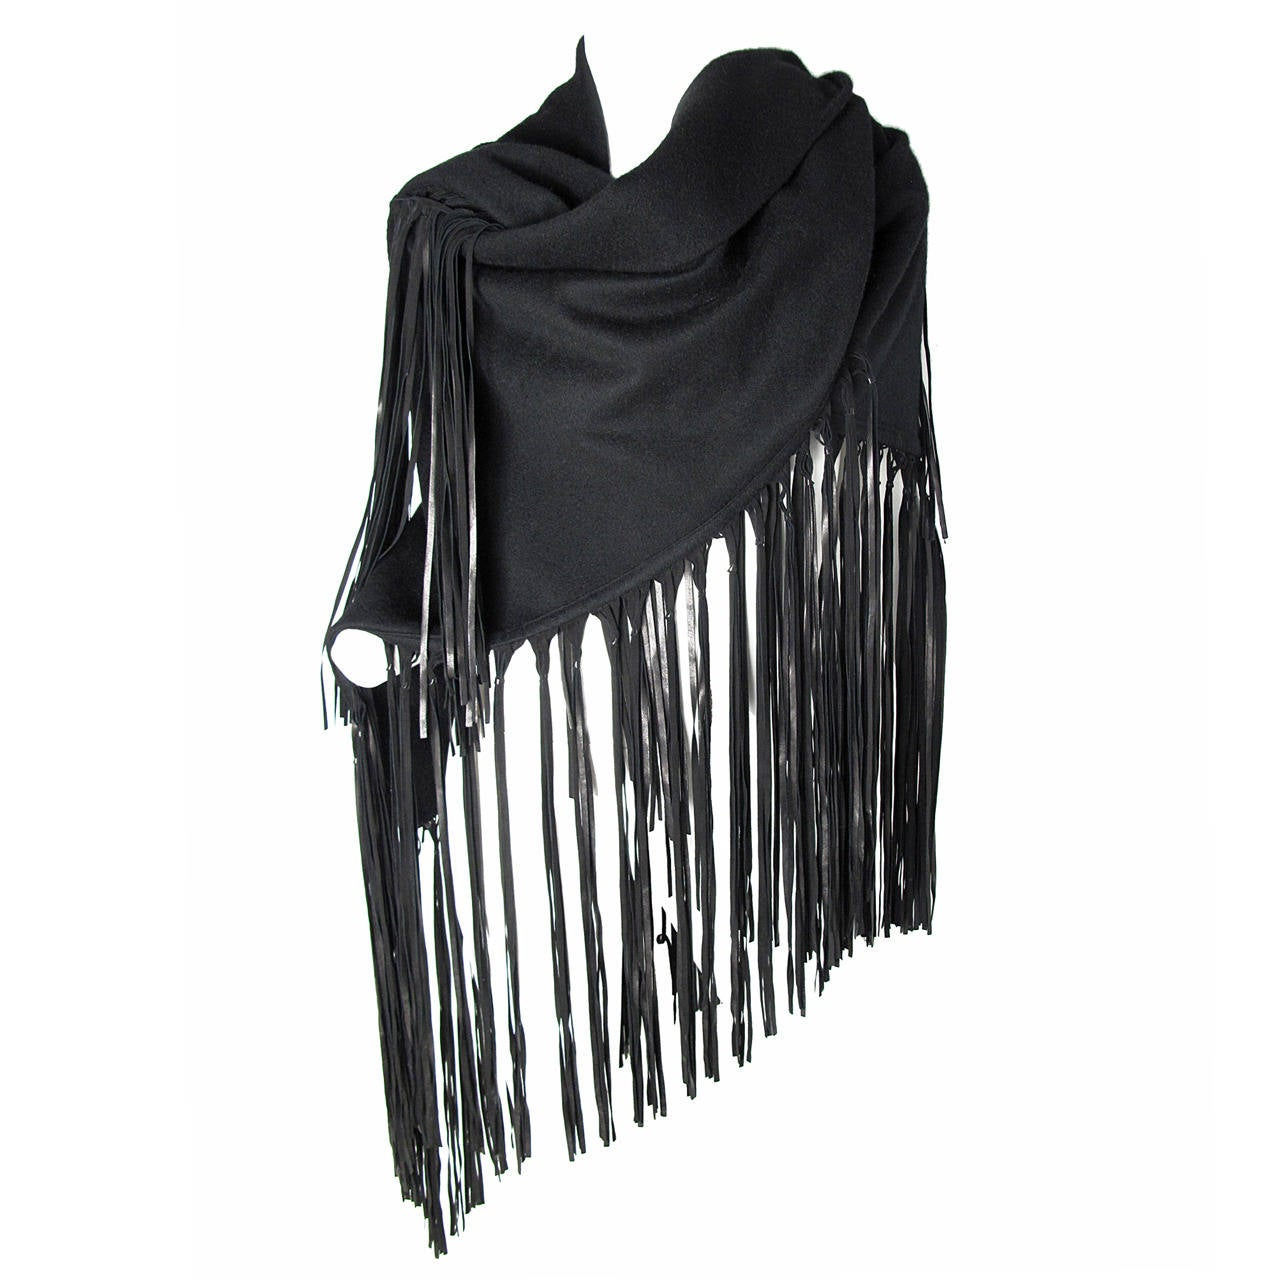 1980s Hermes Black Wool Shawl with Leather Fringe For Sale